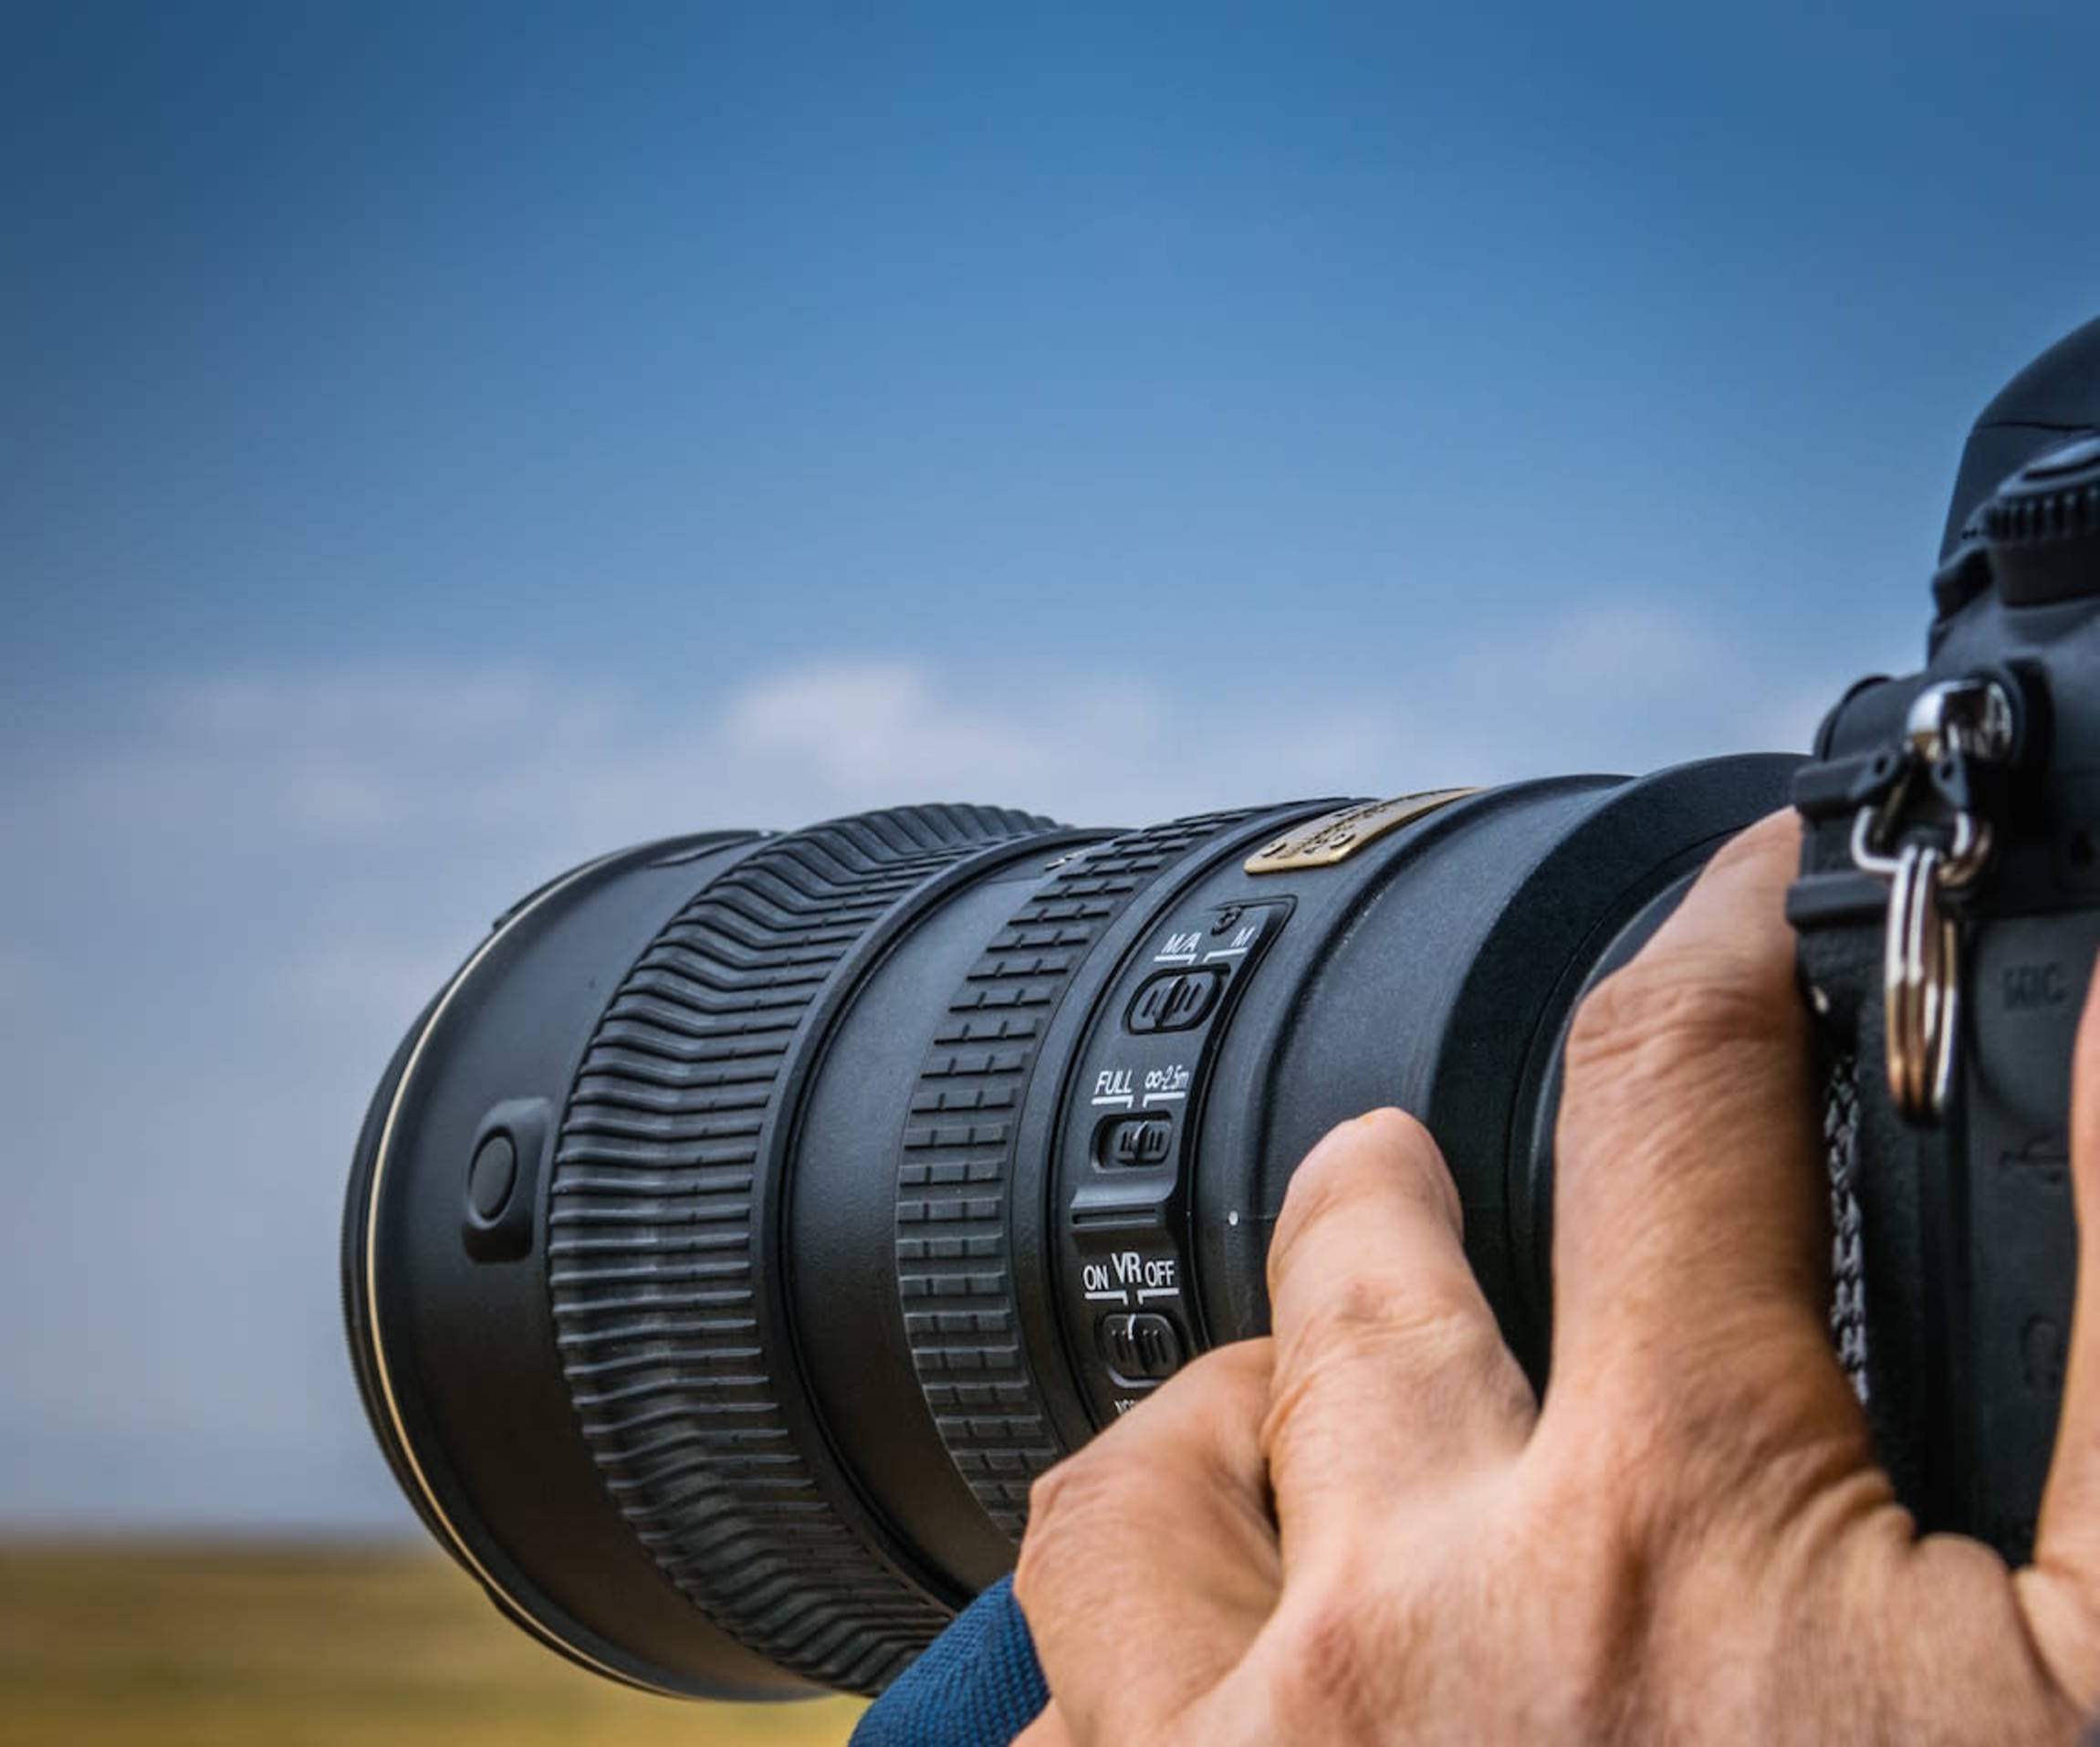 Prime Lens Vs Zoom Lens: Whats best for you?